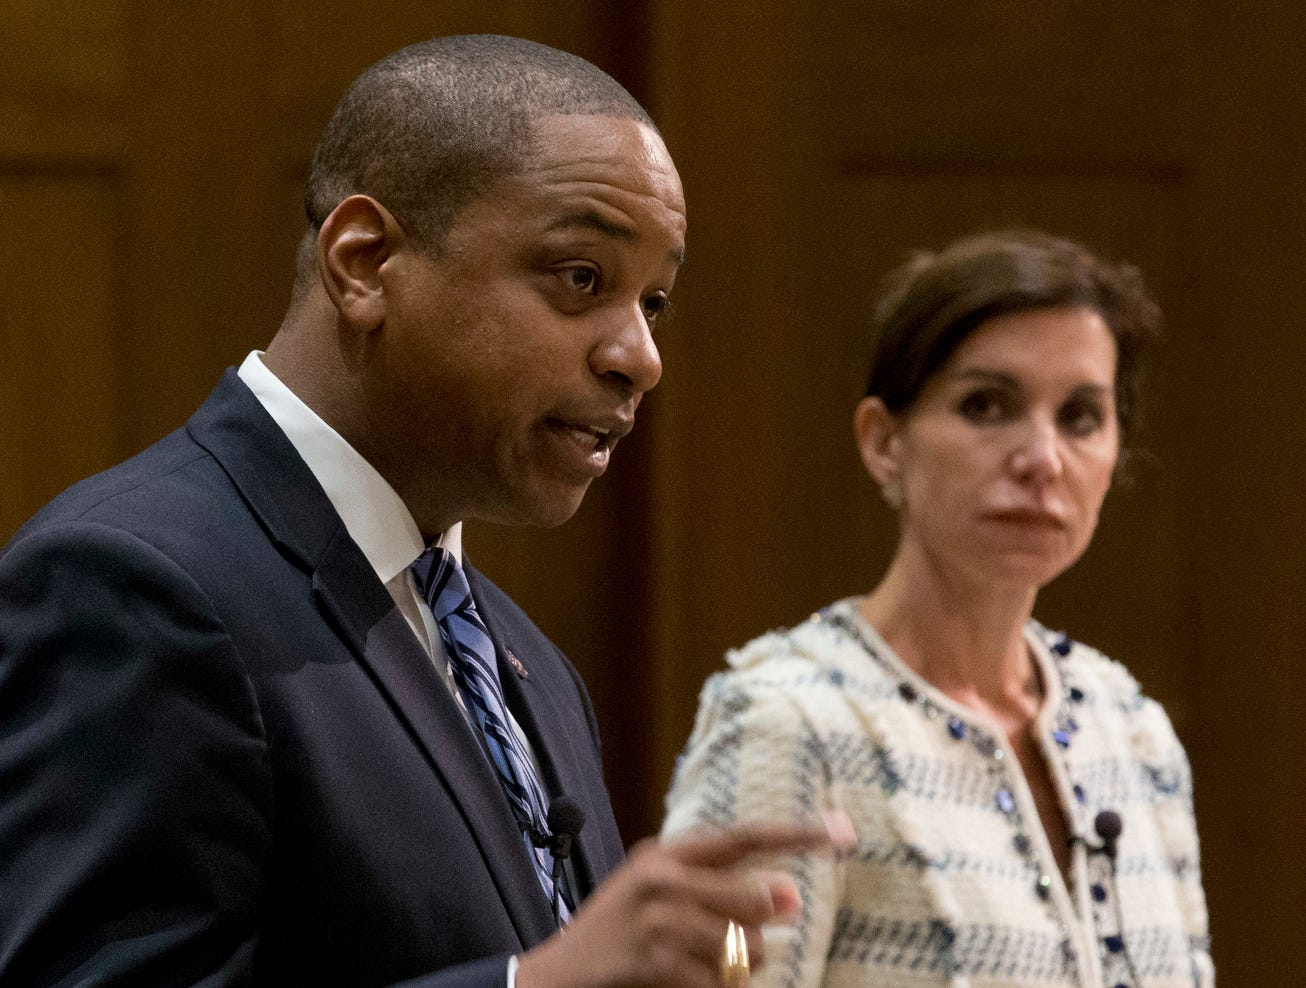 Democratic candidate for Lt. Gov. Justin Fairfax, gestures during a debate with Republican Virginia State Sen. Jill Vogel, right, at the University of Richmond in Richmond, Va., Thursday, Oct. 5, 2017. (AP Photo/Steve Helber)